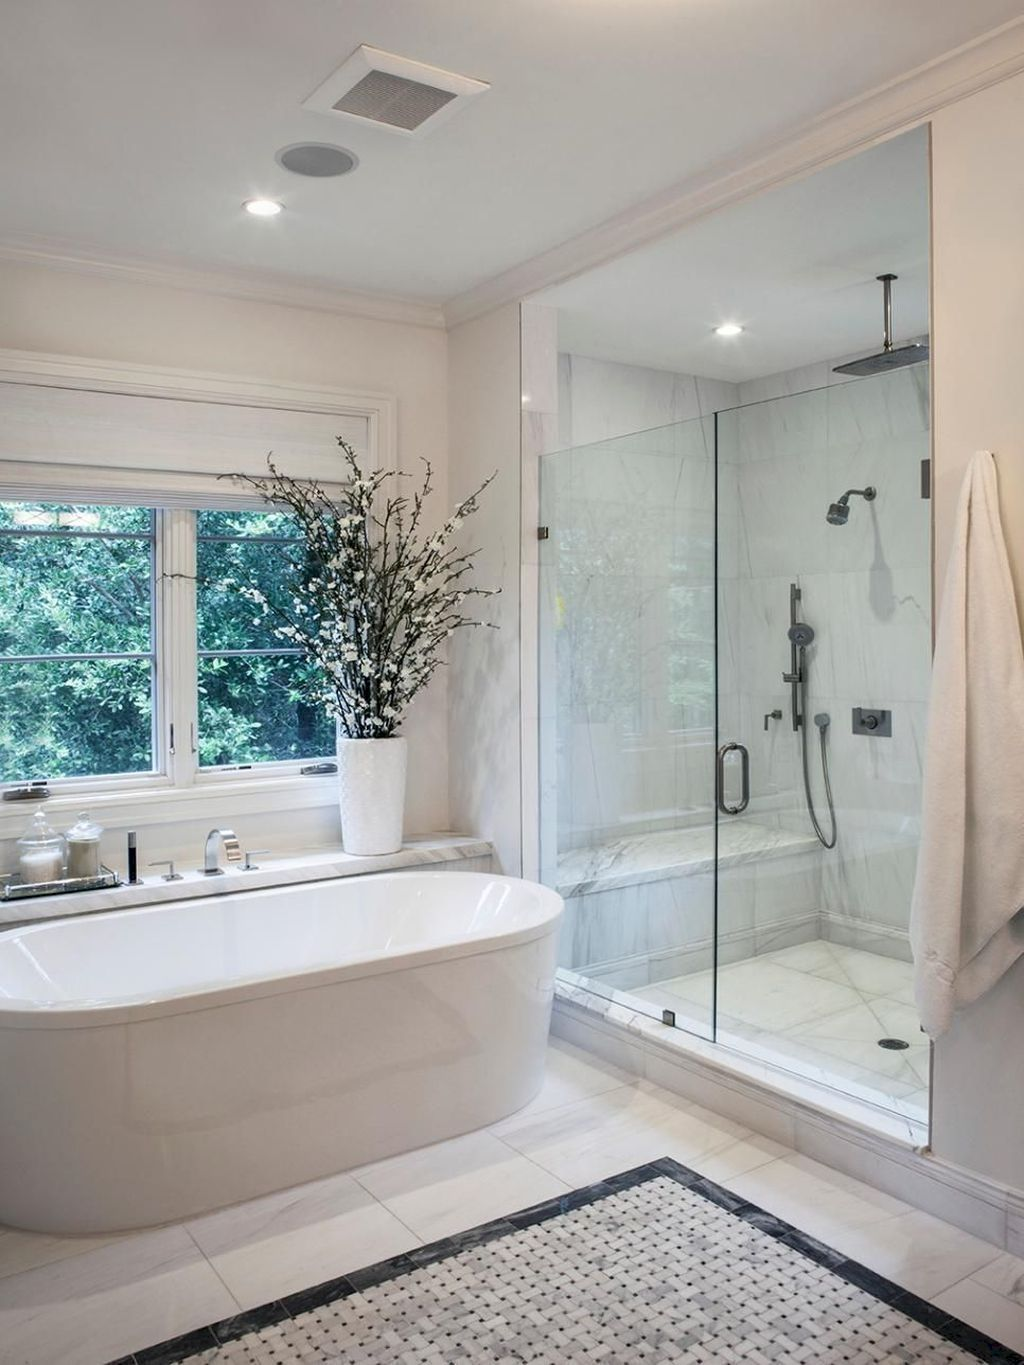 Budget Bathroom Remodel Tips To Reduce Costs Zillow Digs Budget Bathroom Remodel Bathrooms Remodel Budget Bathroom